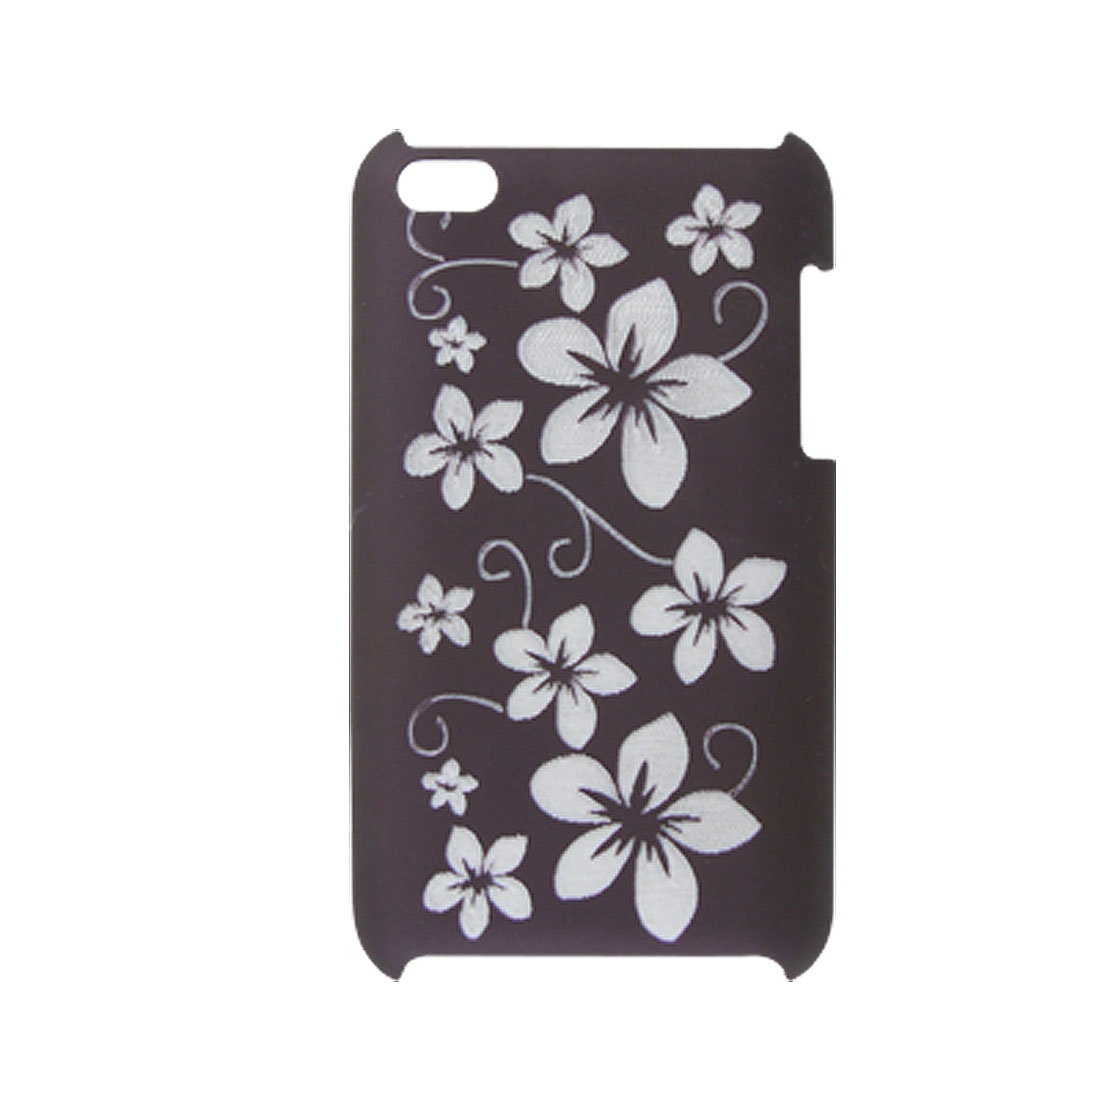 Nonslip Rubberized Plastic Flower Hard Cover for iPod Touch 4G